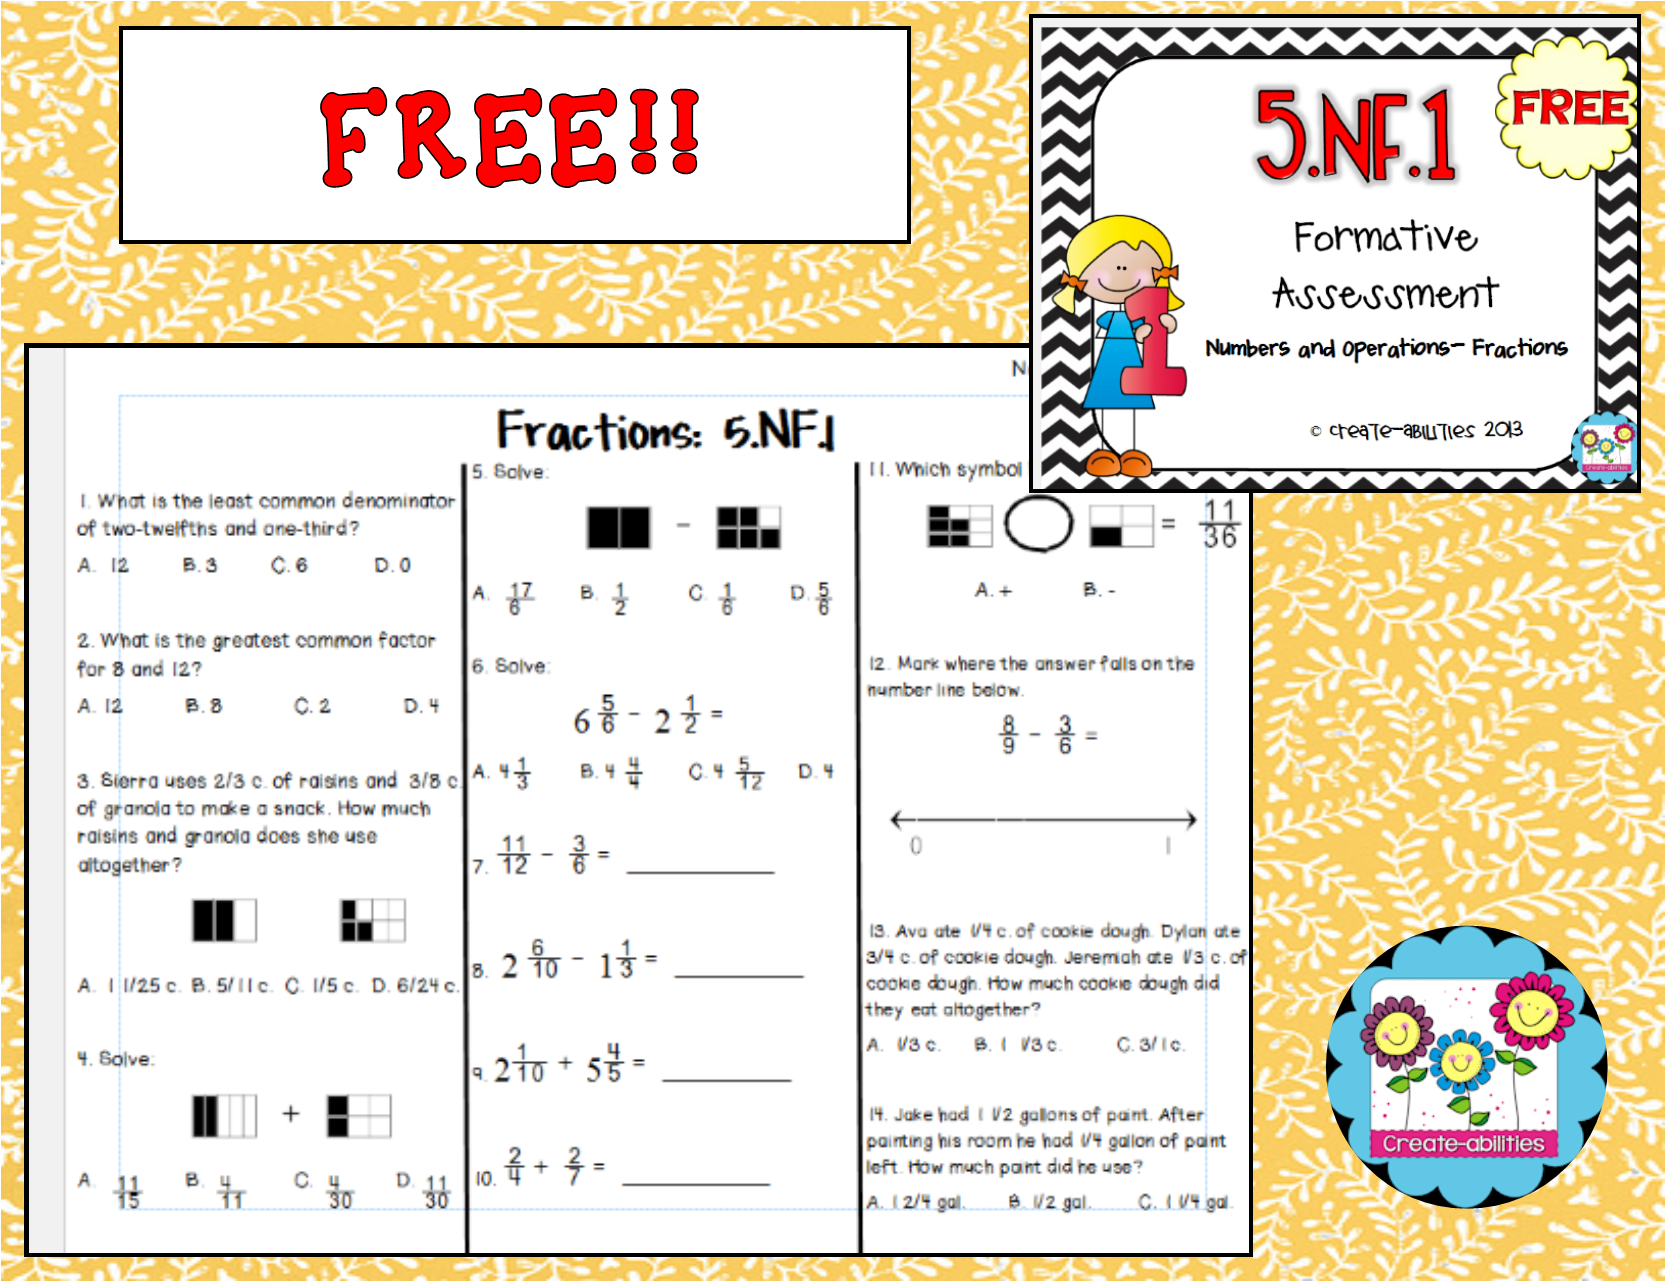 Free 51 formative assessment and answer key a free assessment 51 formative assessment and answer key a free assessment for adding and subtracting fractions assessment fractions fifthgrade fandeluxe Image collections